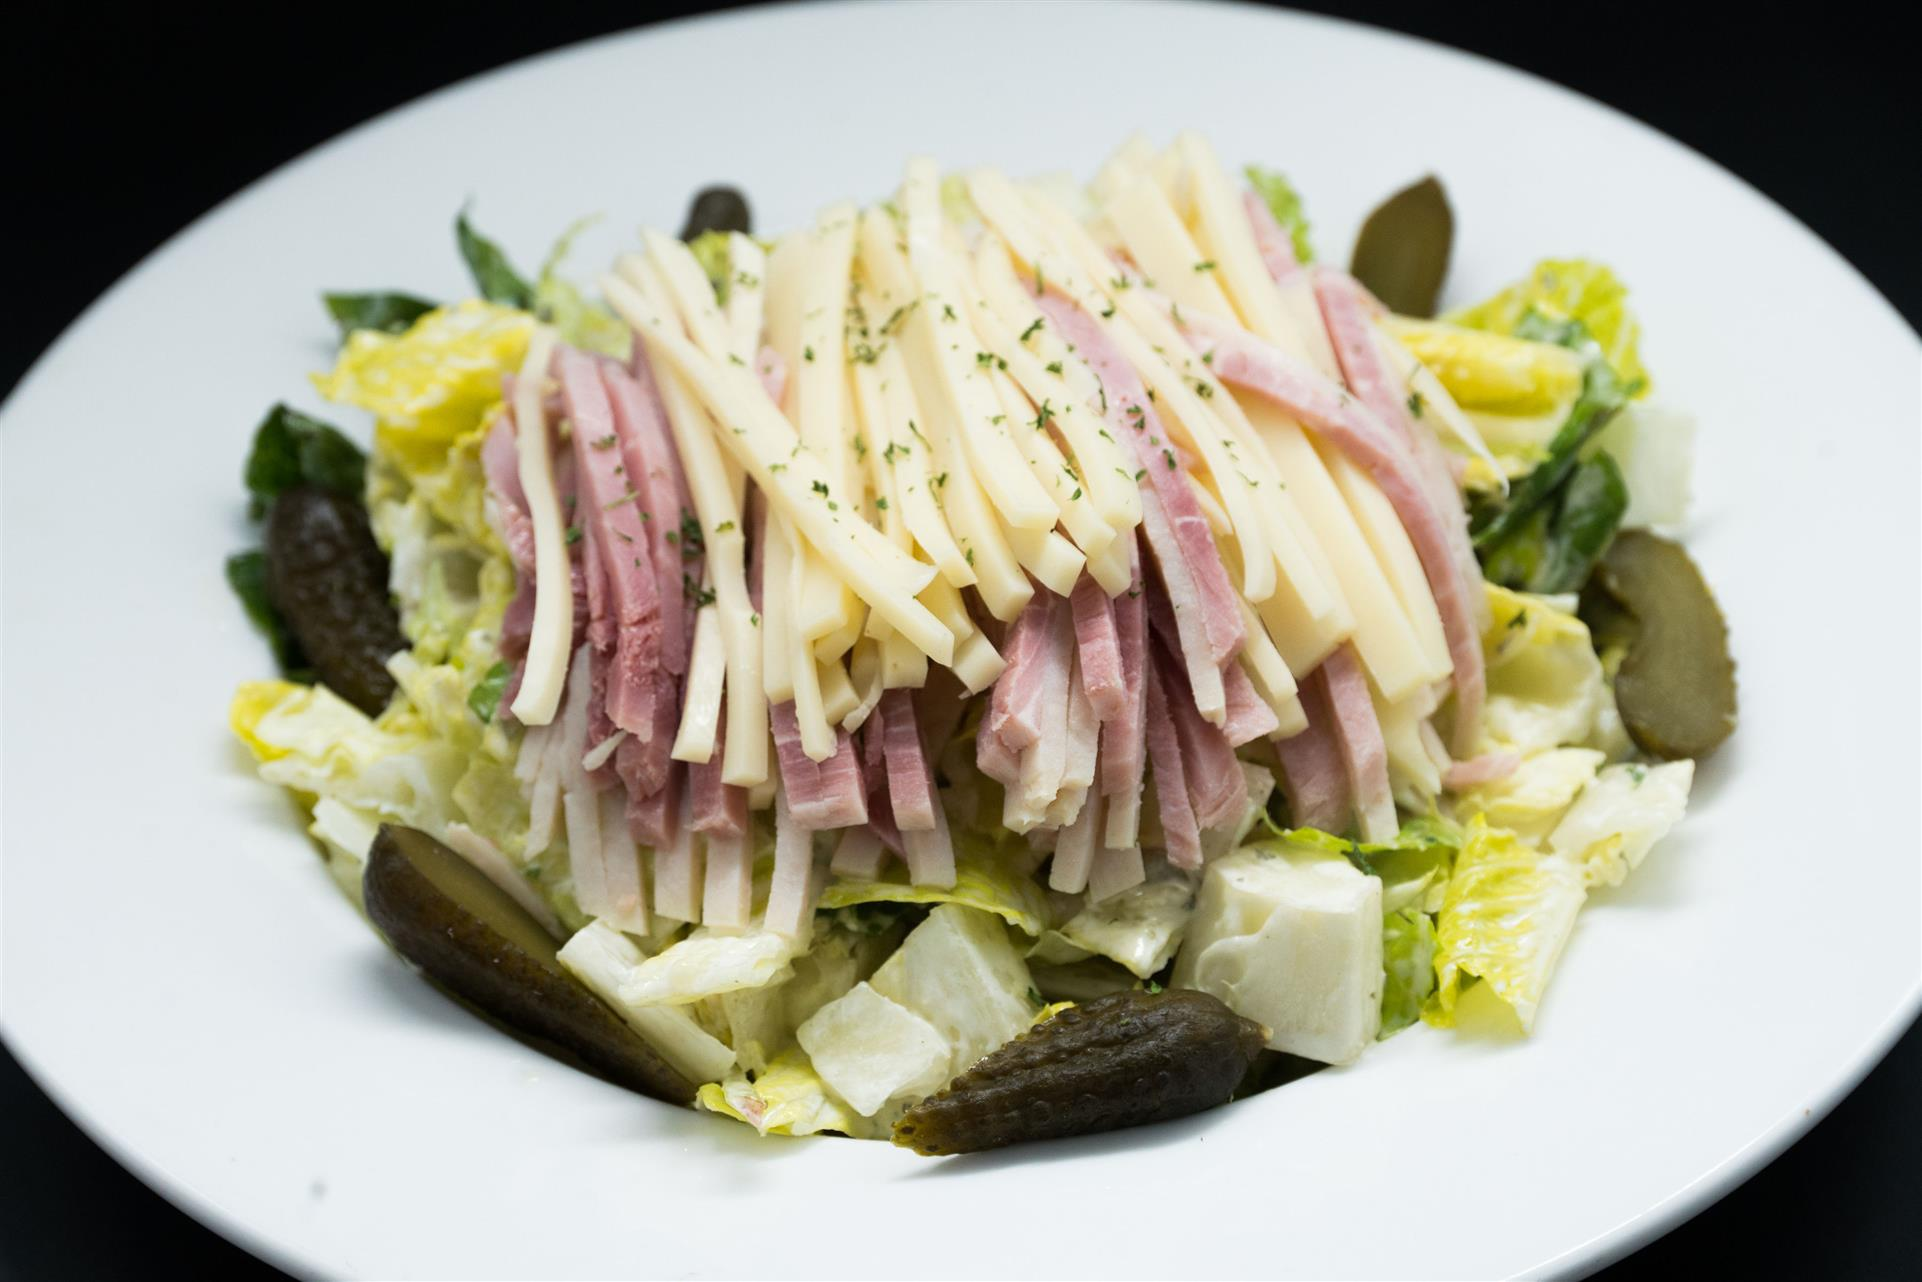 hudson salad. Smoked ham and turkey, romaine hearts, gherkin pickle, green olives and swiss in Hudson dressing